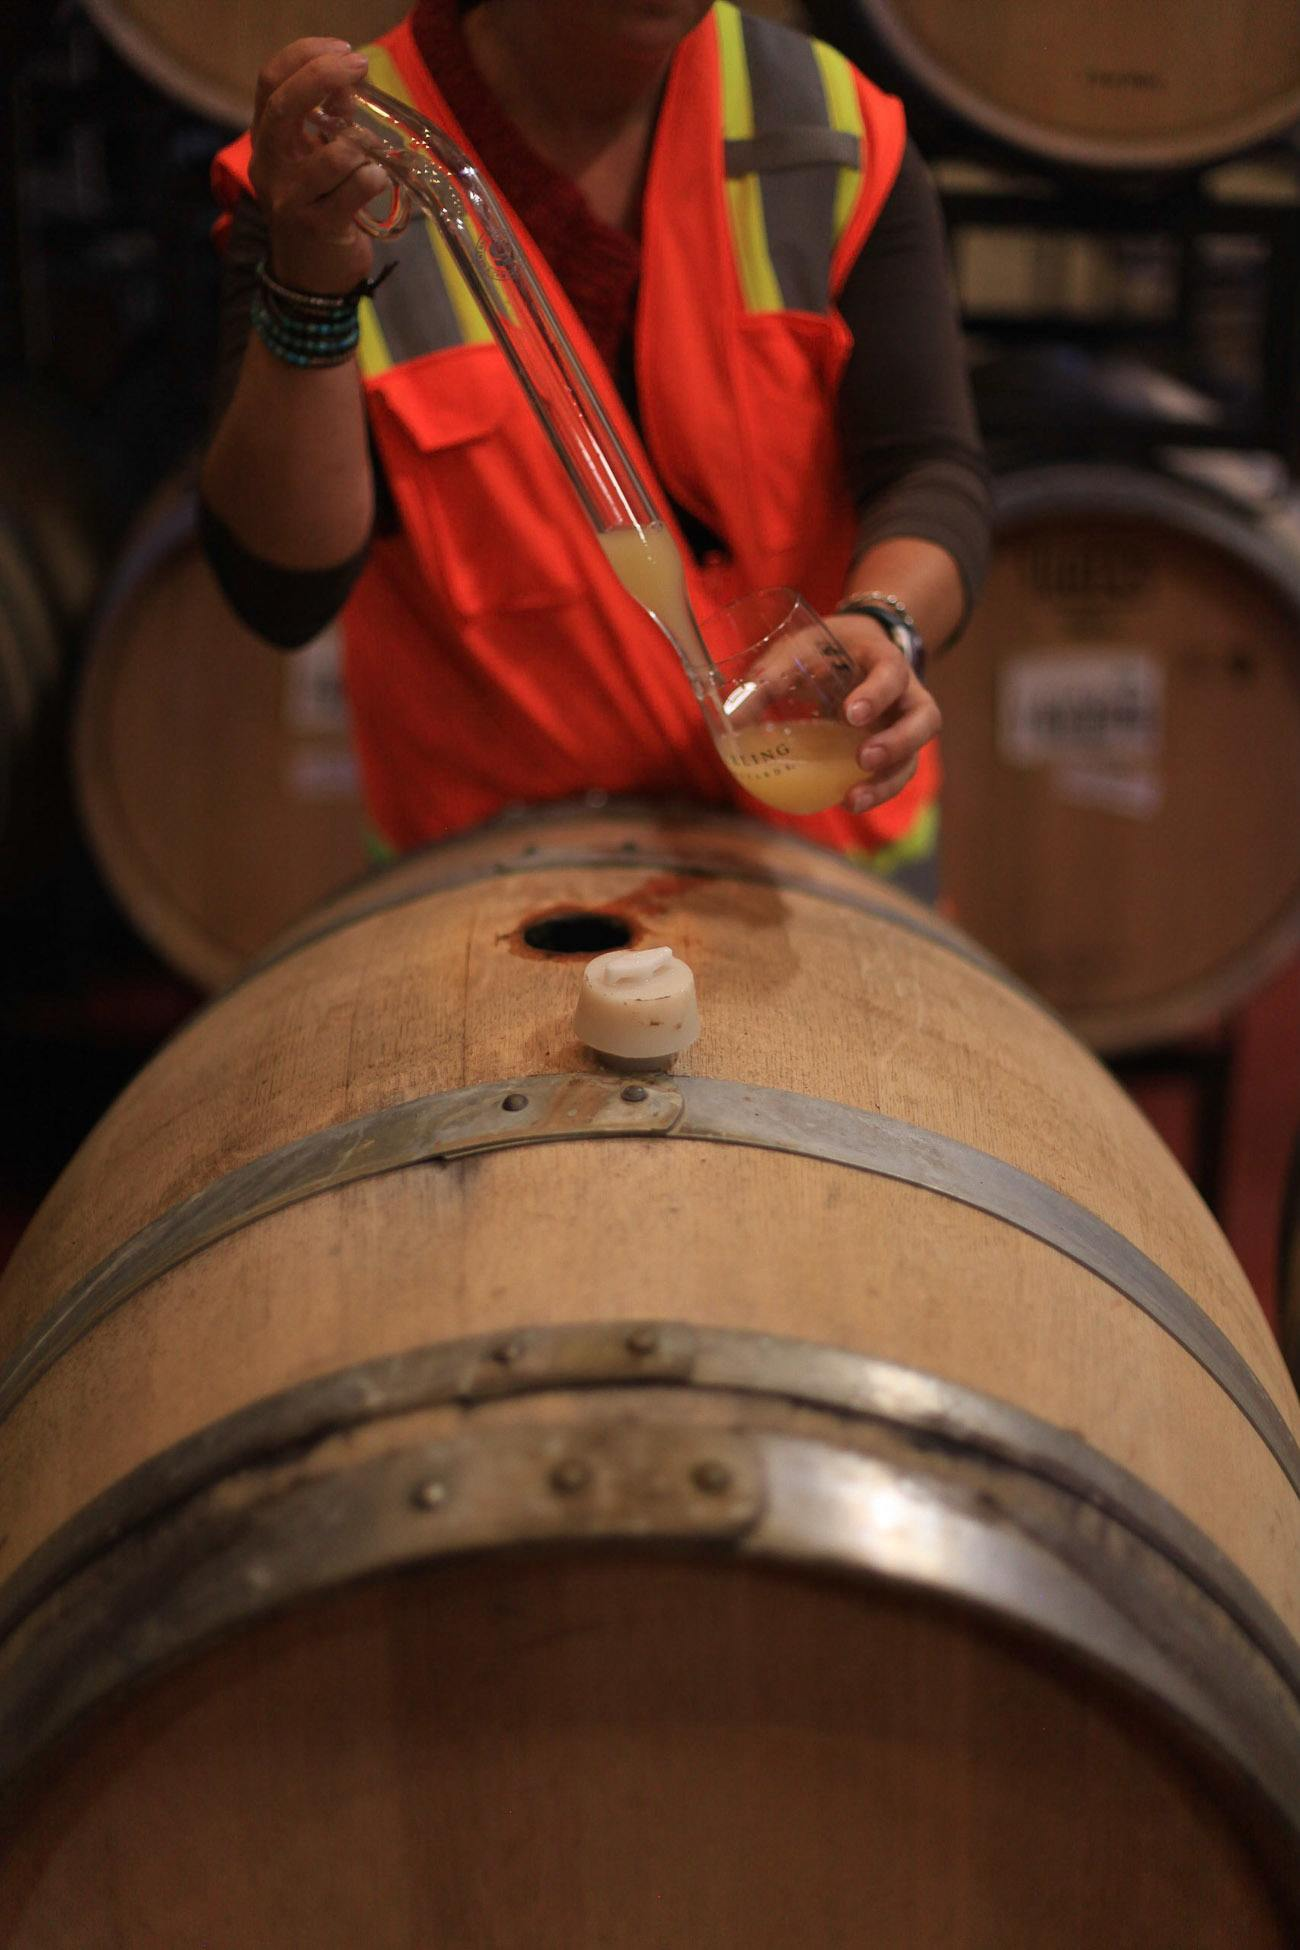 Tasting Chardonnay from a barrel at Sterling Vineyards in Napa Valley